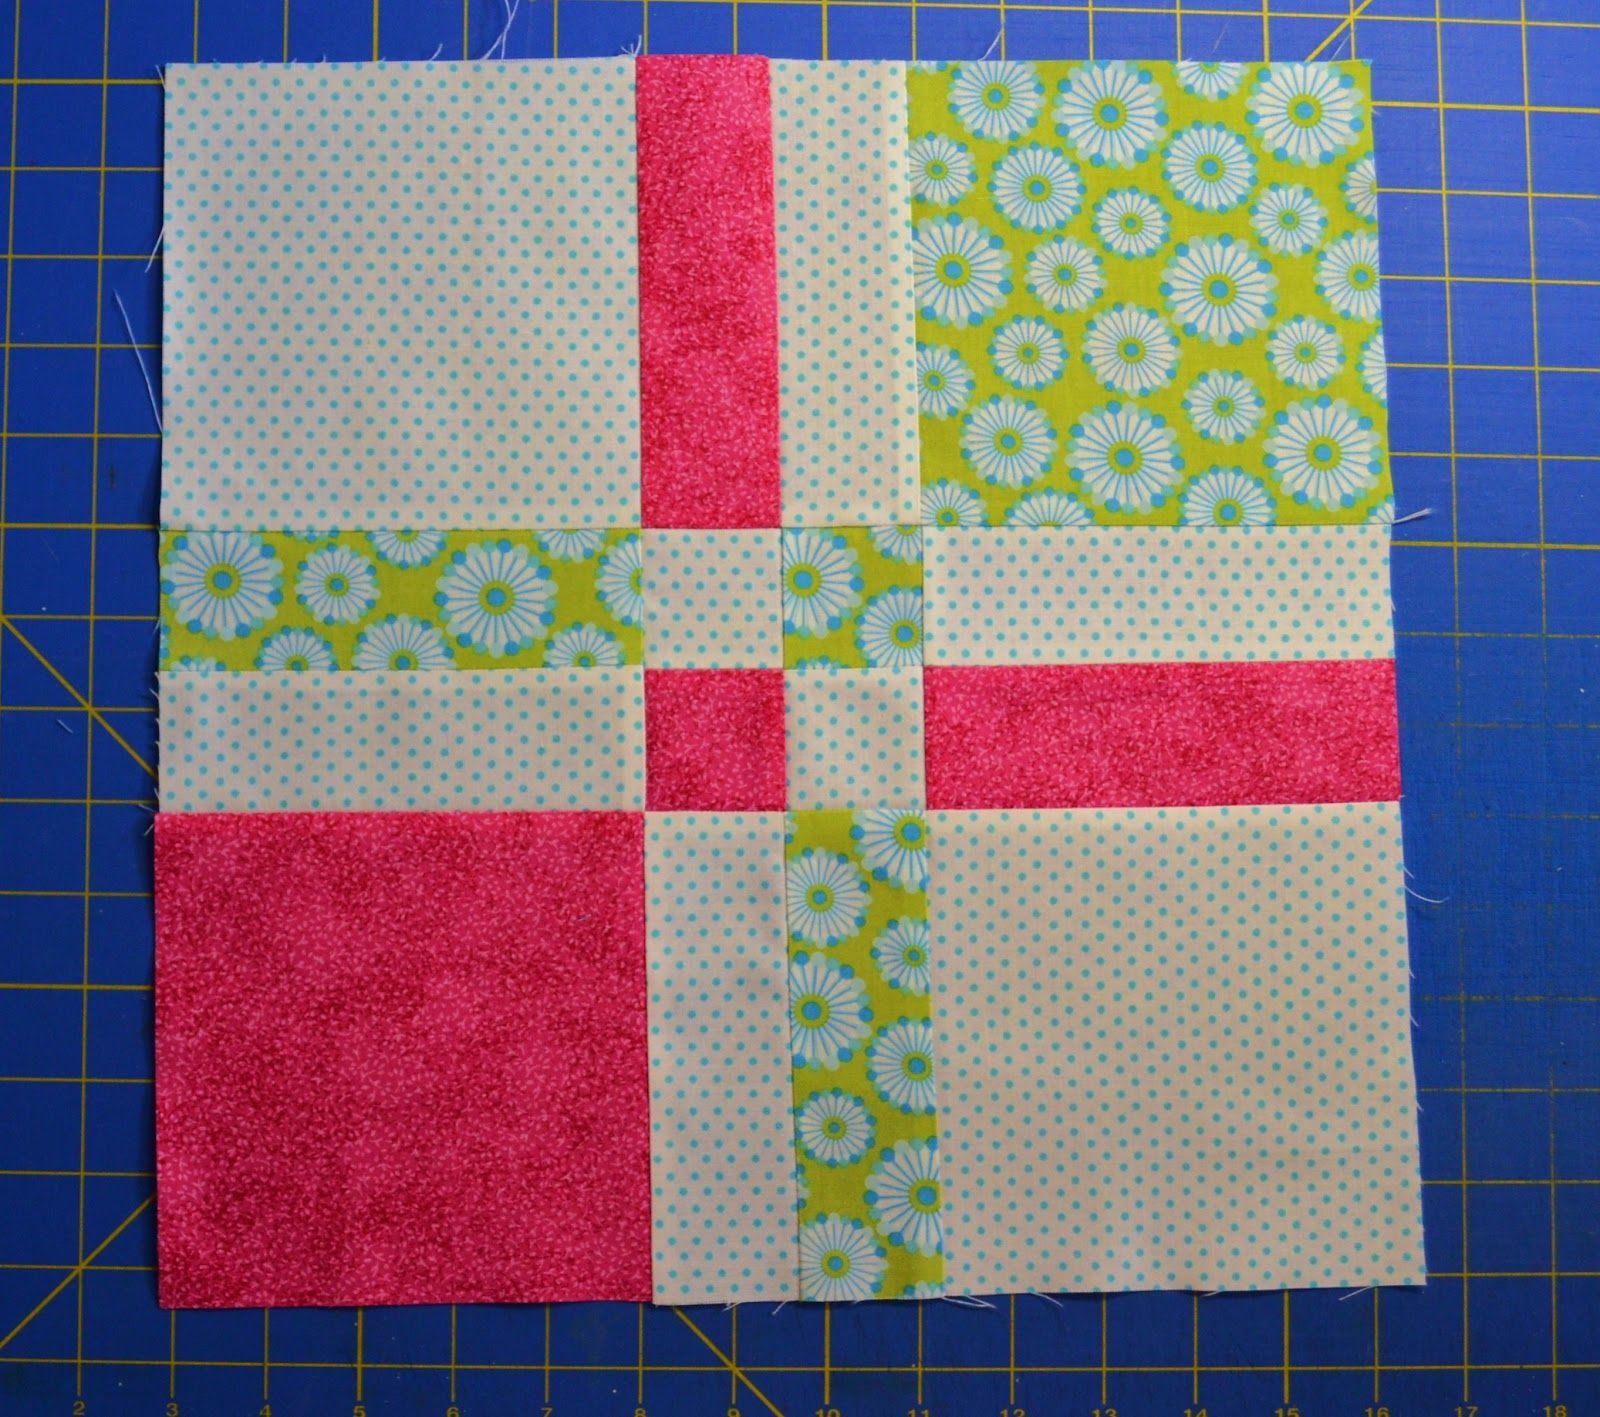 Disappearing Four Patch Quilt Block | Chock-A-Block Quilt Blocks ... : 4 quilt block patterns - Adamdwight.com